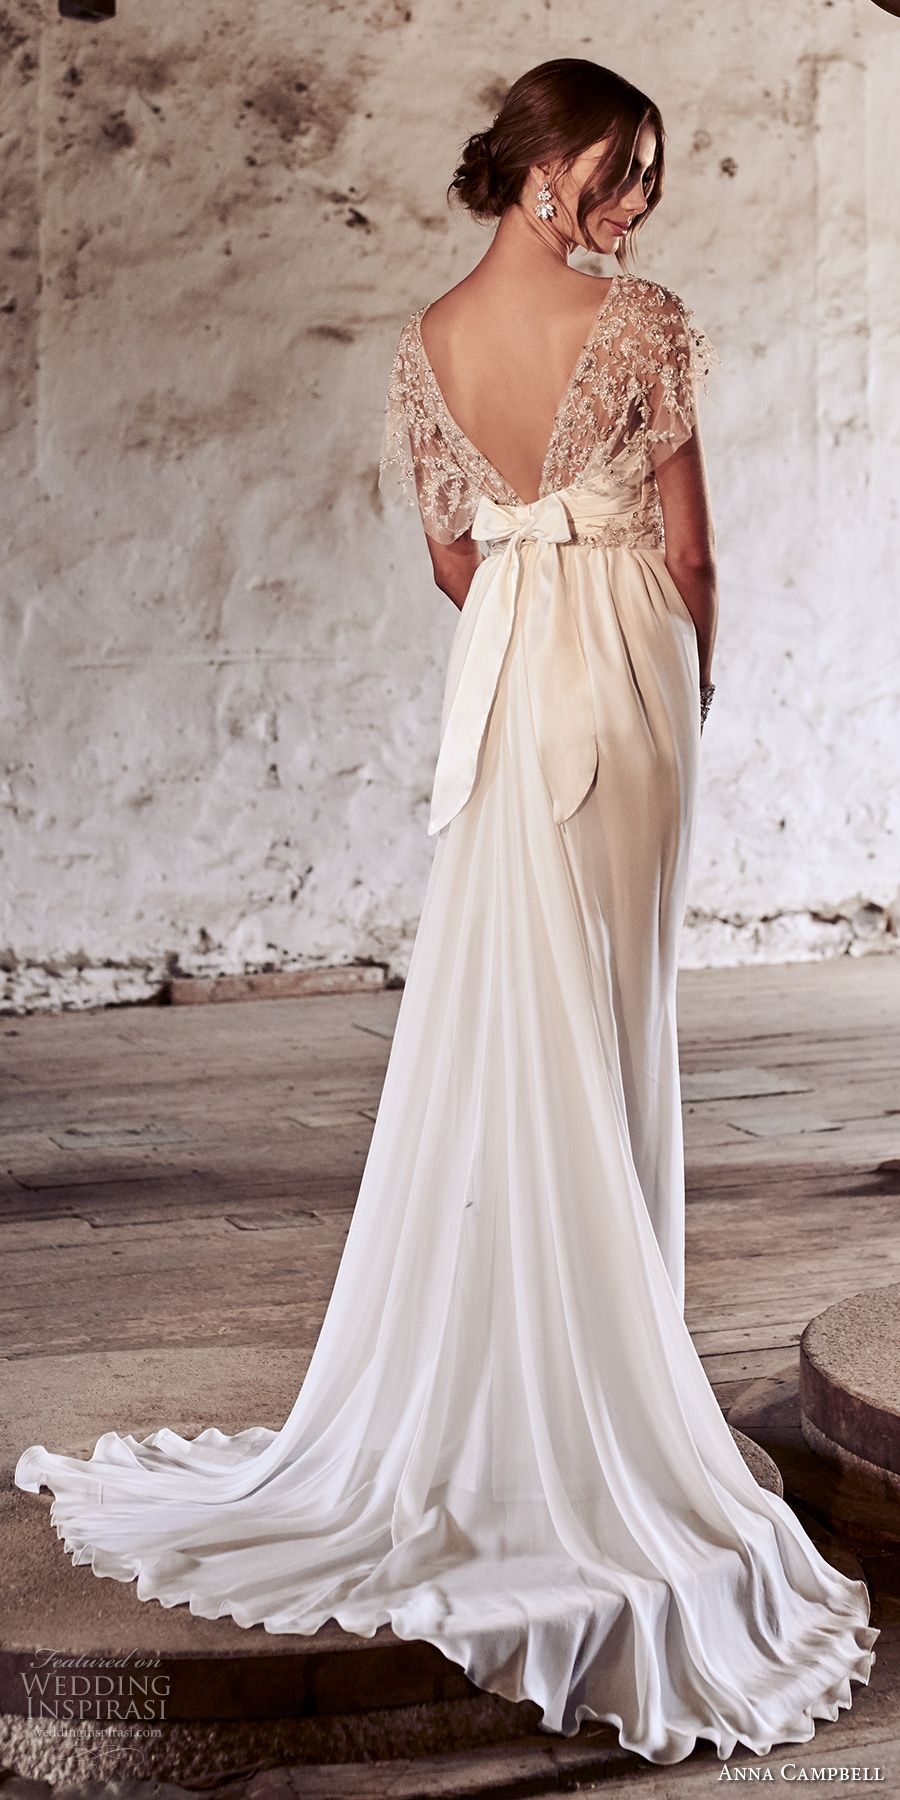 Anna campbell bridal short sleeves illusion bateau sweetheart